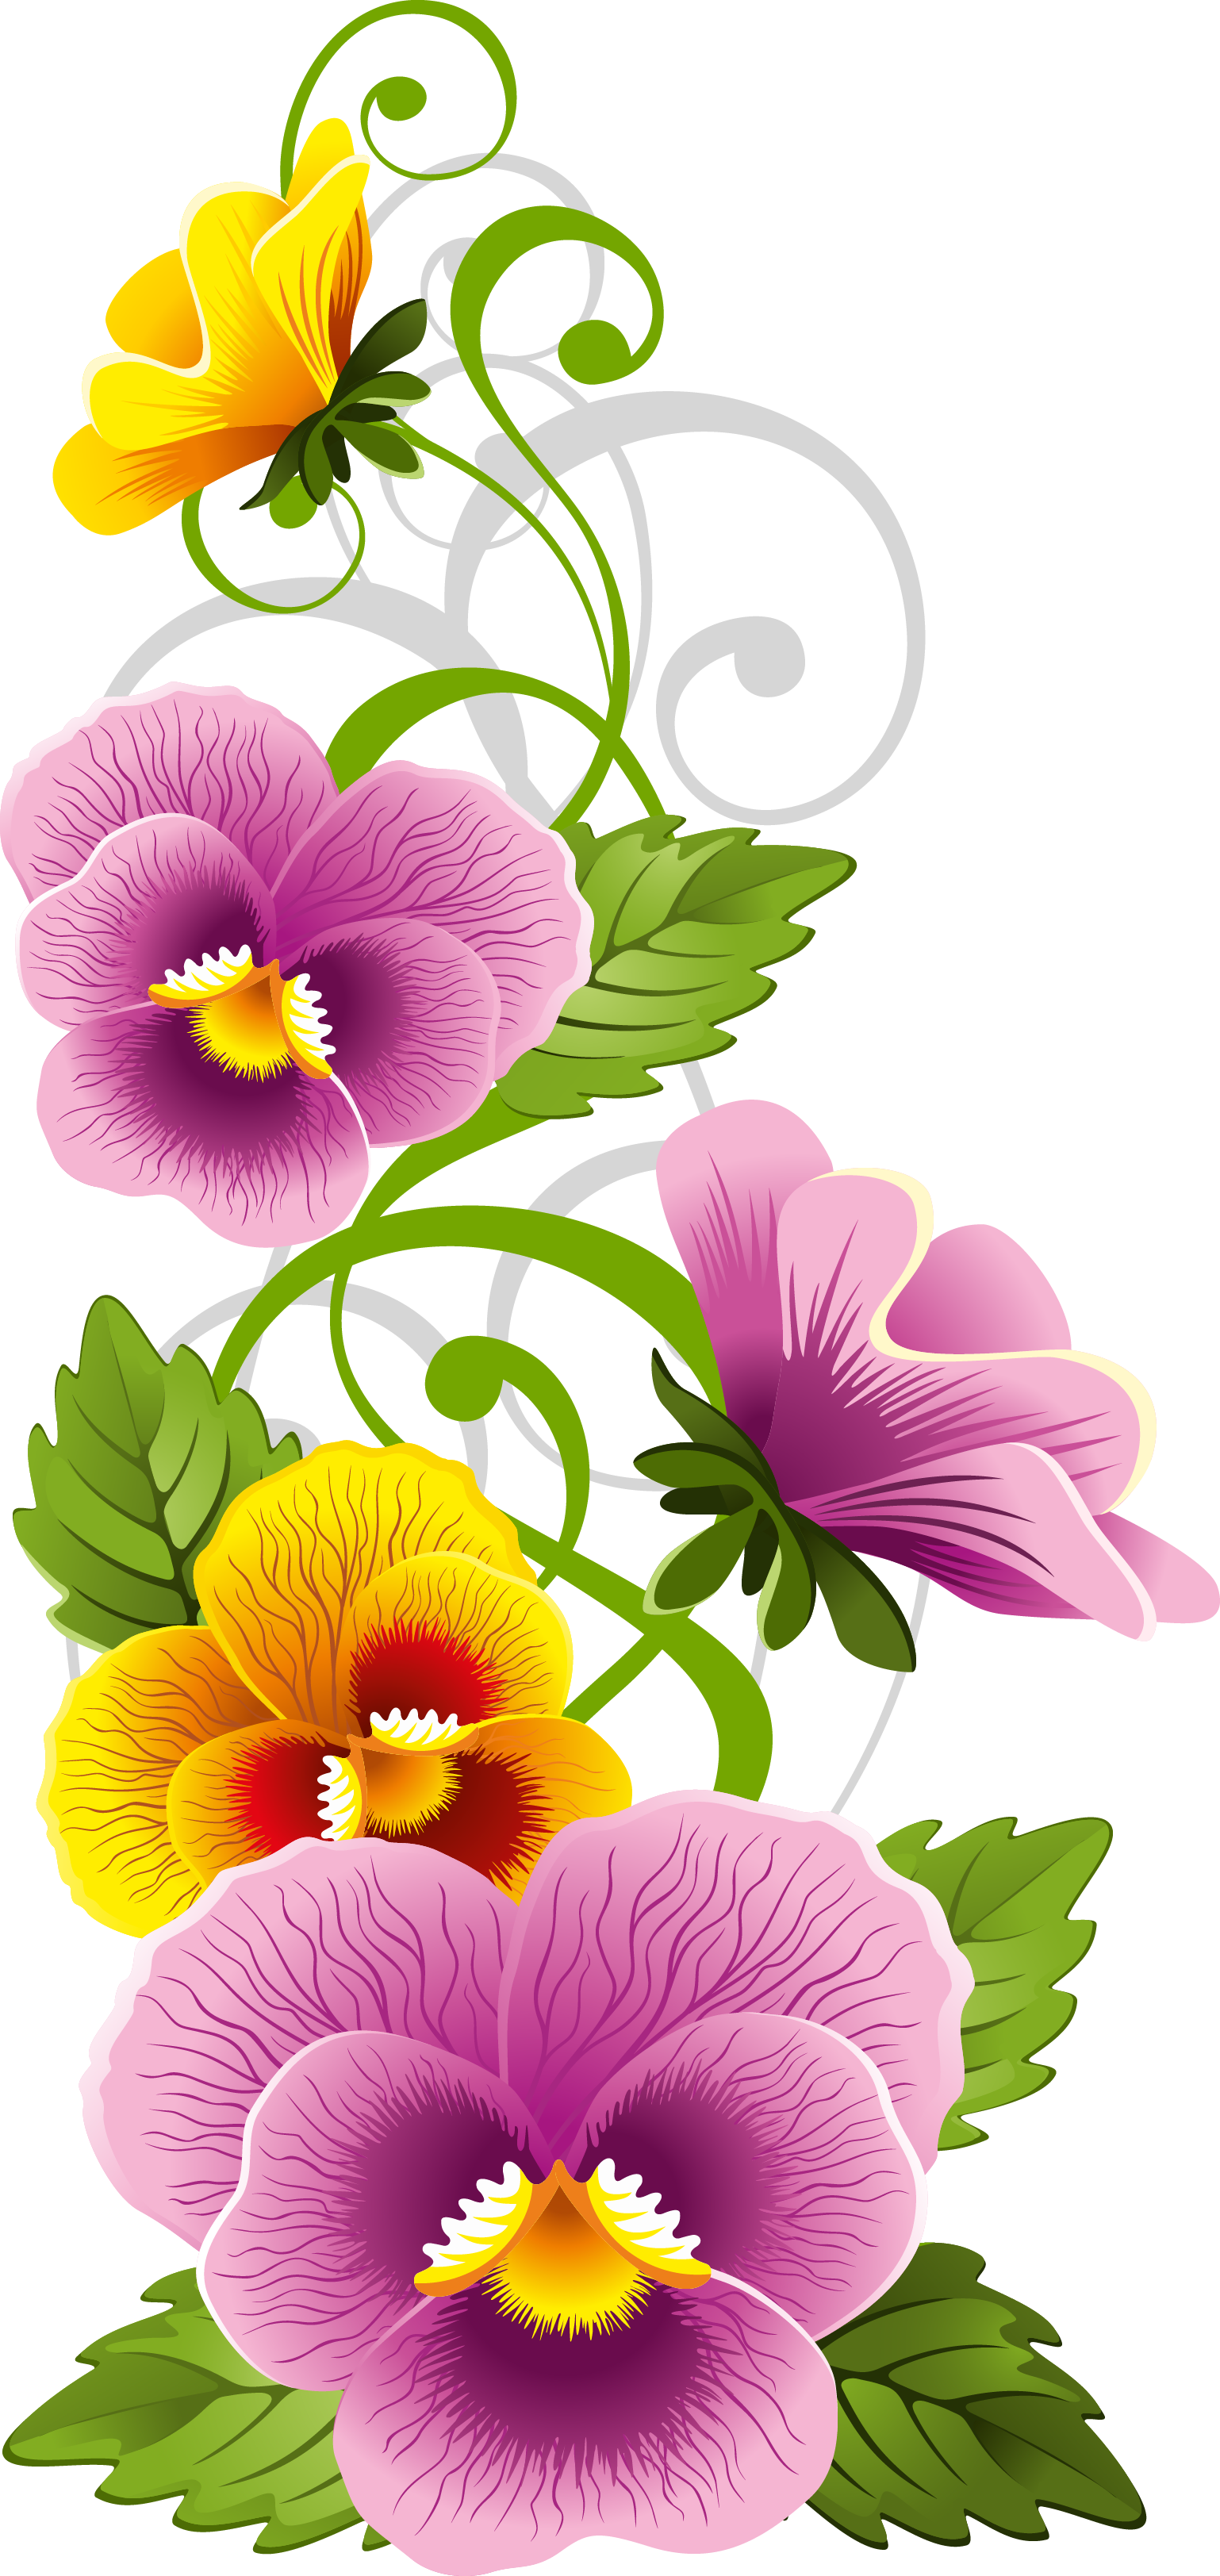 Pansy flower clipart clip stock 0_8f141_1e55aaf1_orig 1,538×3,24 7 pixels | Paint draw I must know ... clip stock